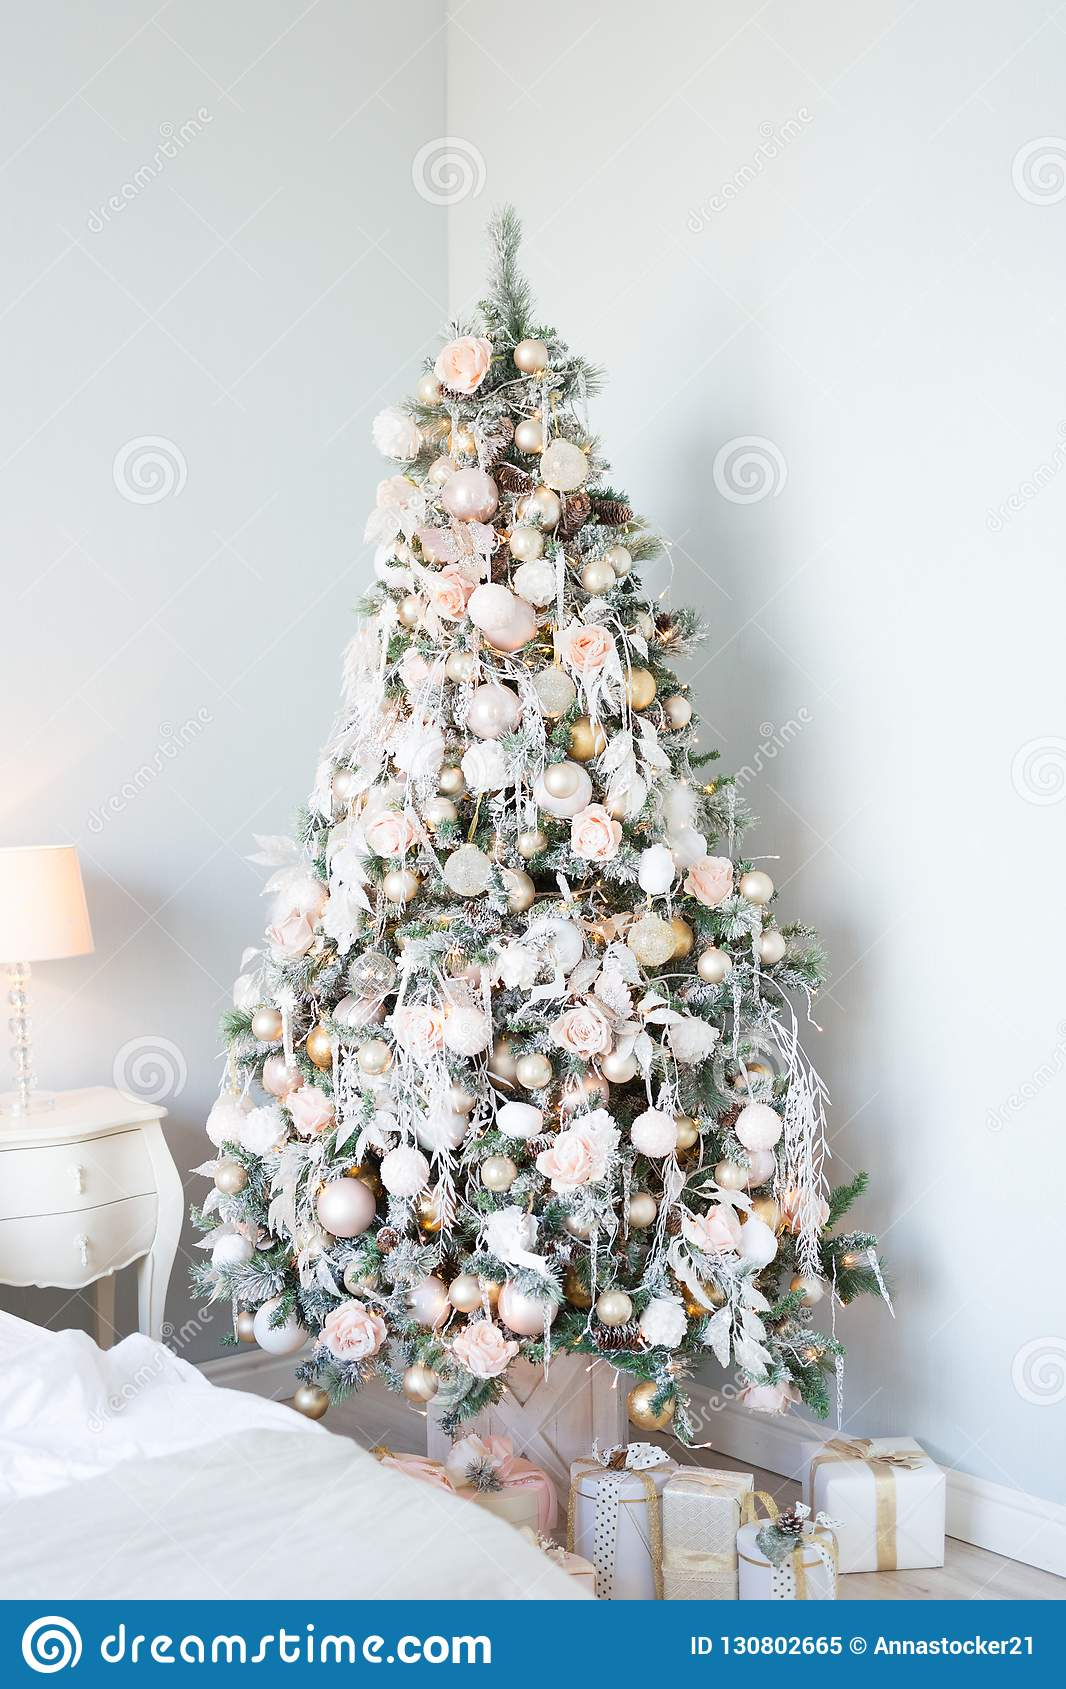 Christmas Tree With White And Light Pink Blue Balls And Gift Boxes Over Wall New Year Christmas Concept Stock Image Image Of Pine Holiday 130802665